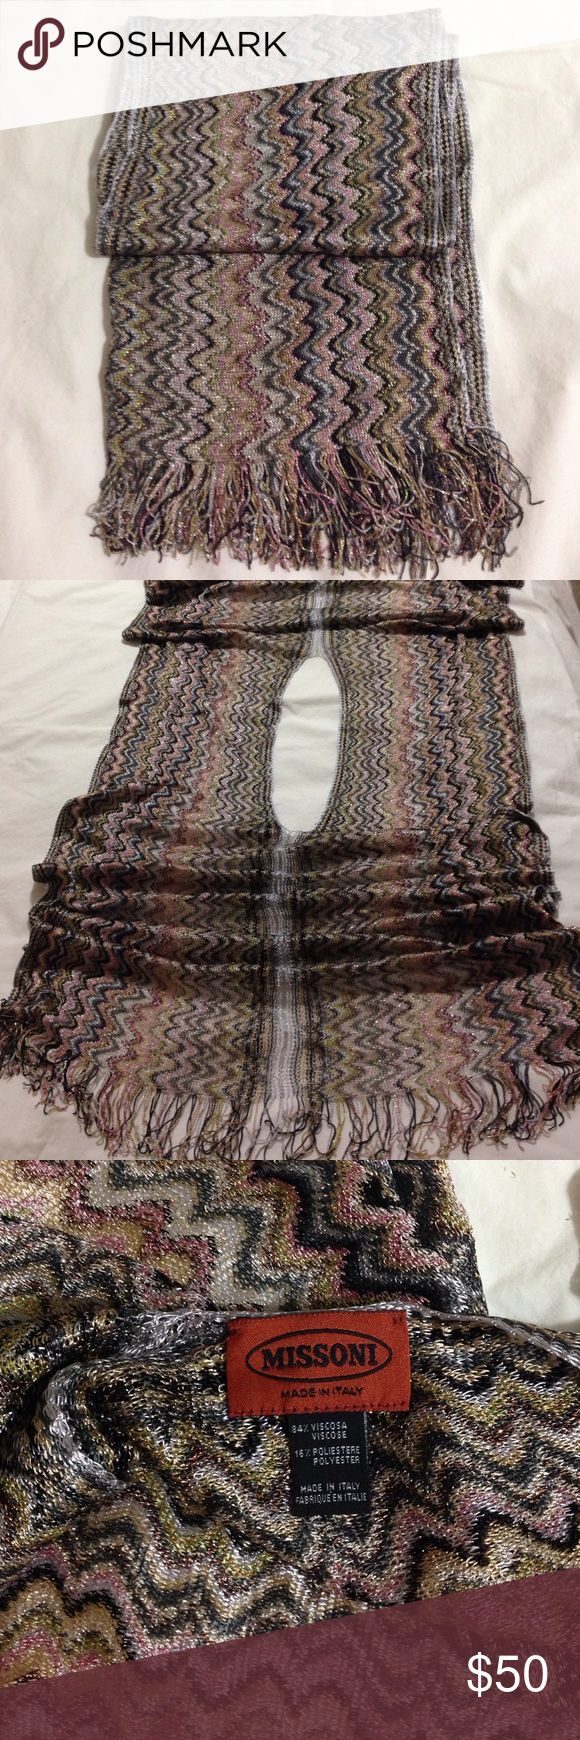 Original Missoni Scarf from Italy Brand NEW, comes without tags Missoni Other